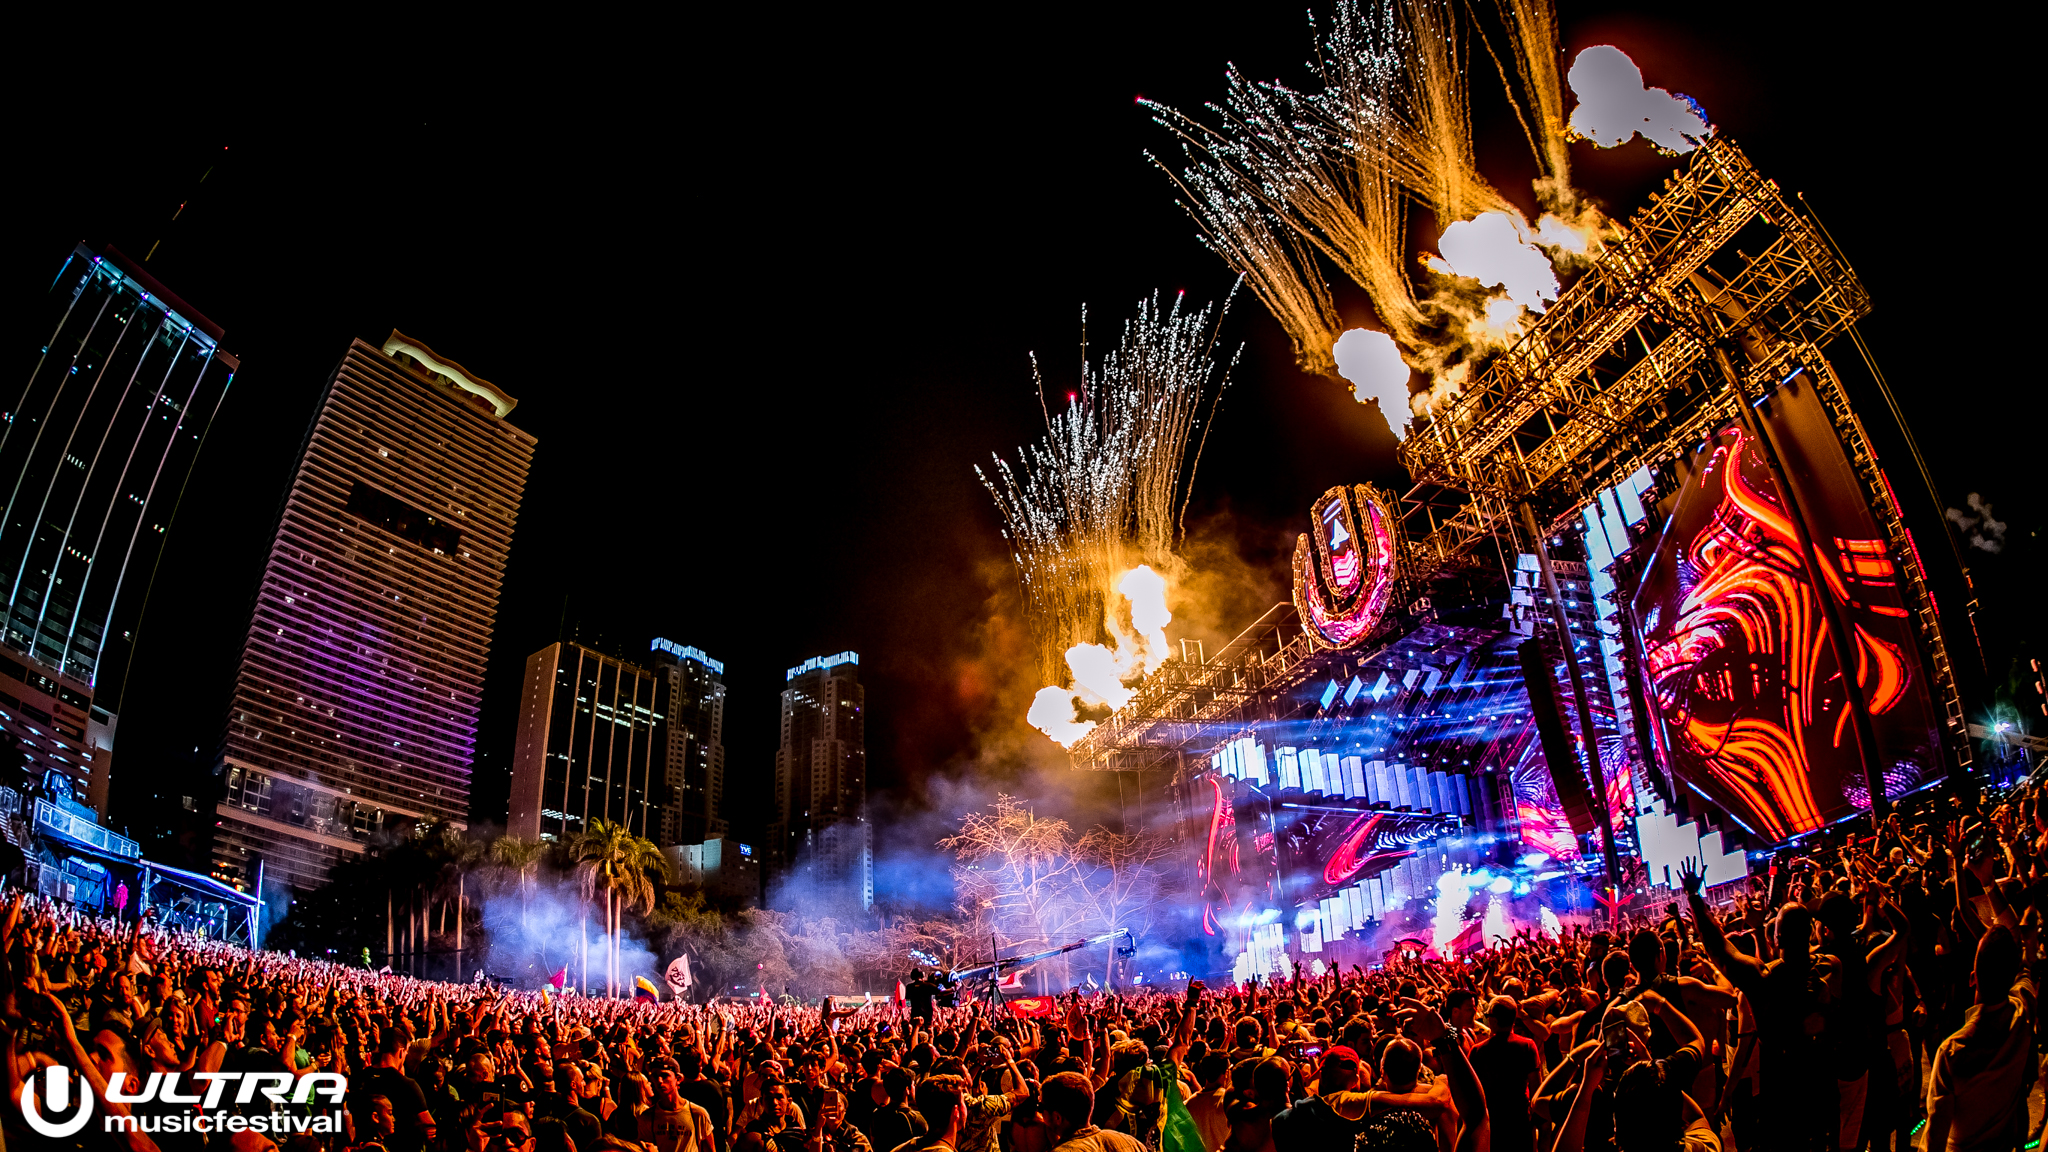 Ultra 2018 by Philippe Wuyts Photography